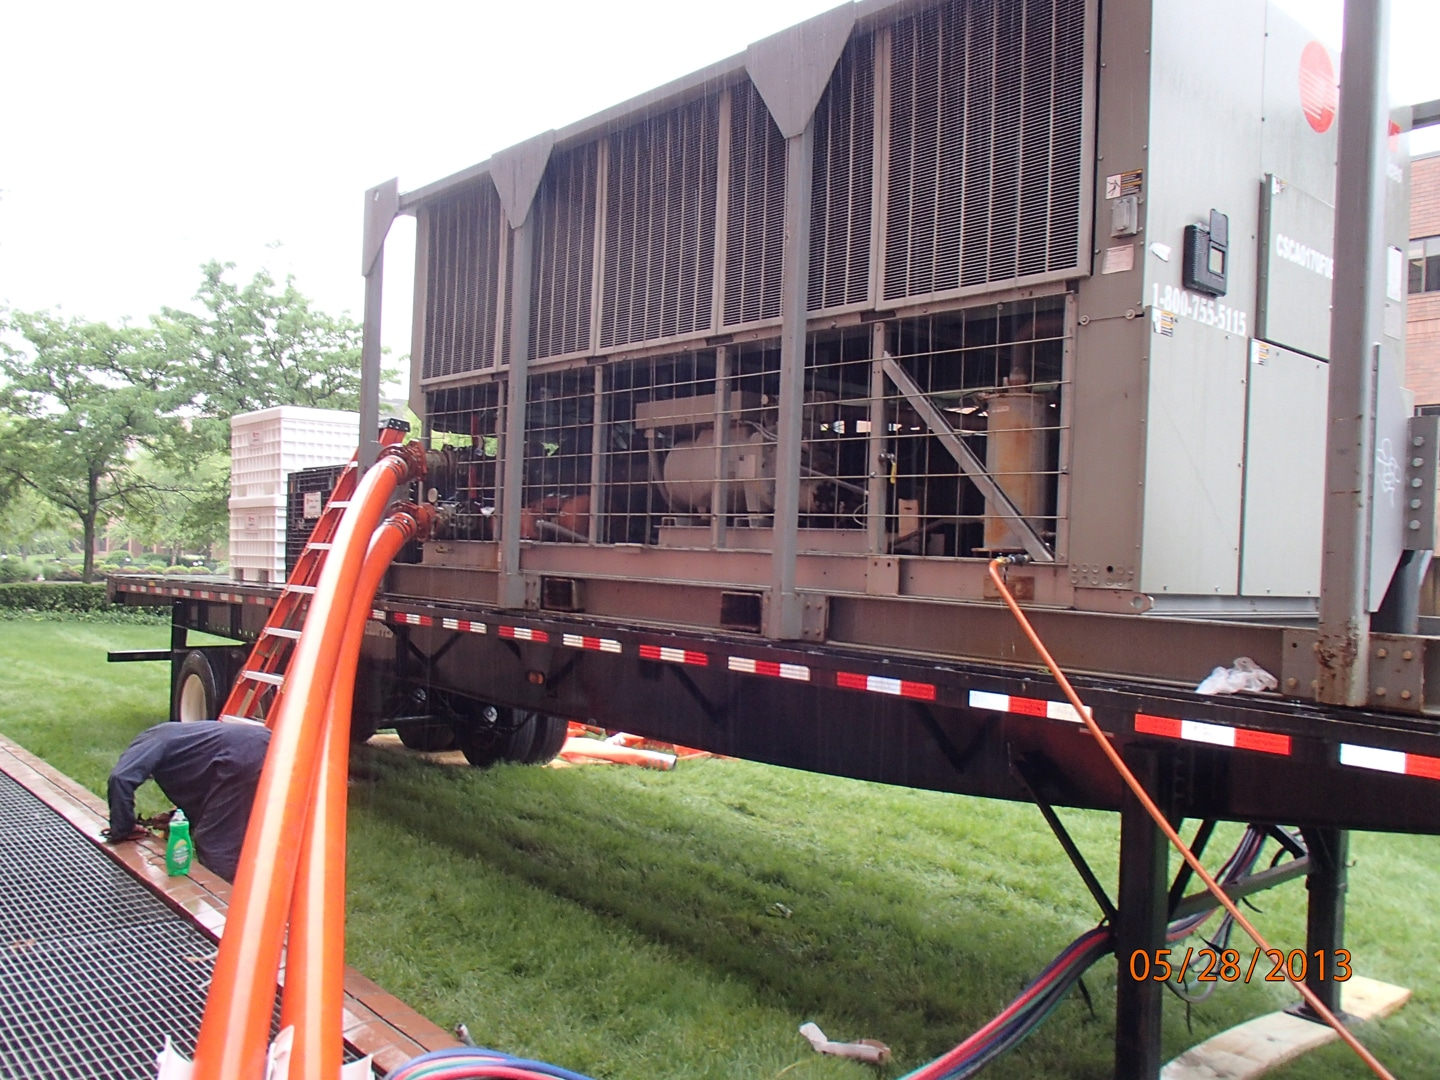 Air Cooled Chiller Rental NY , Air Cooled Chiller Rental DE , Chiller AC Rental NYC , Chiller AC Rental PA